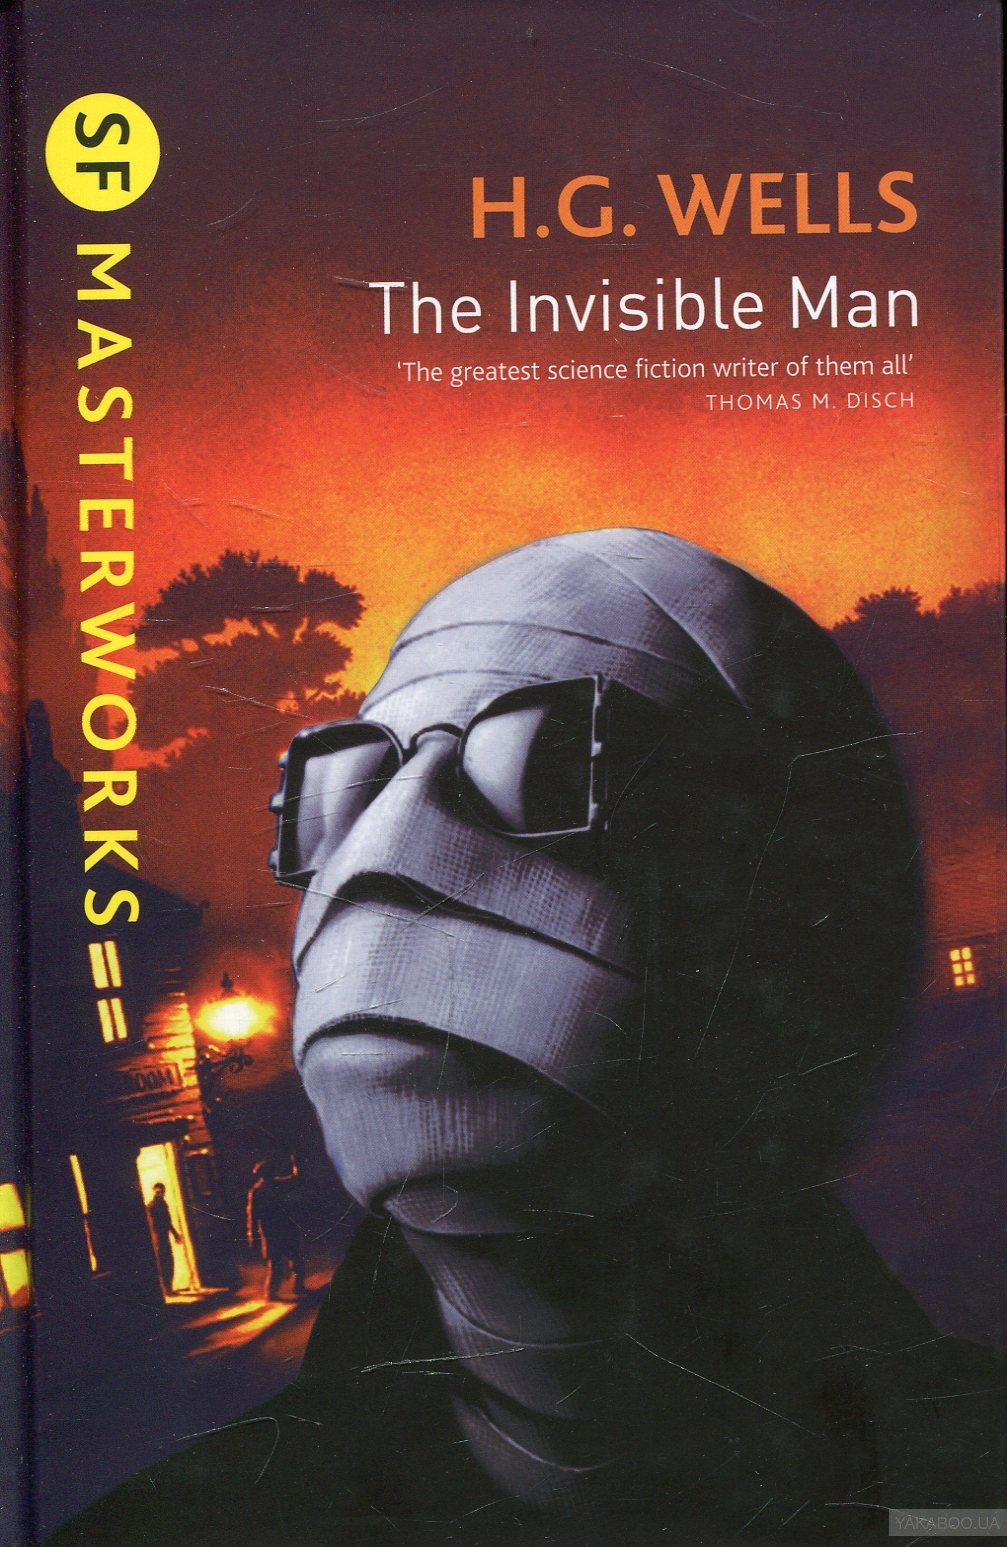 a review of the major characters of the story the invisible man